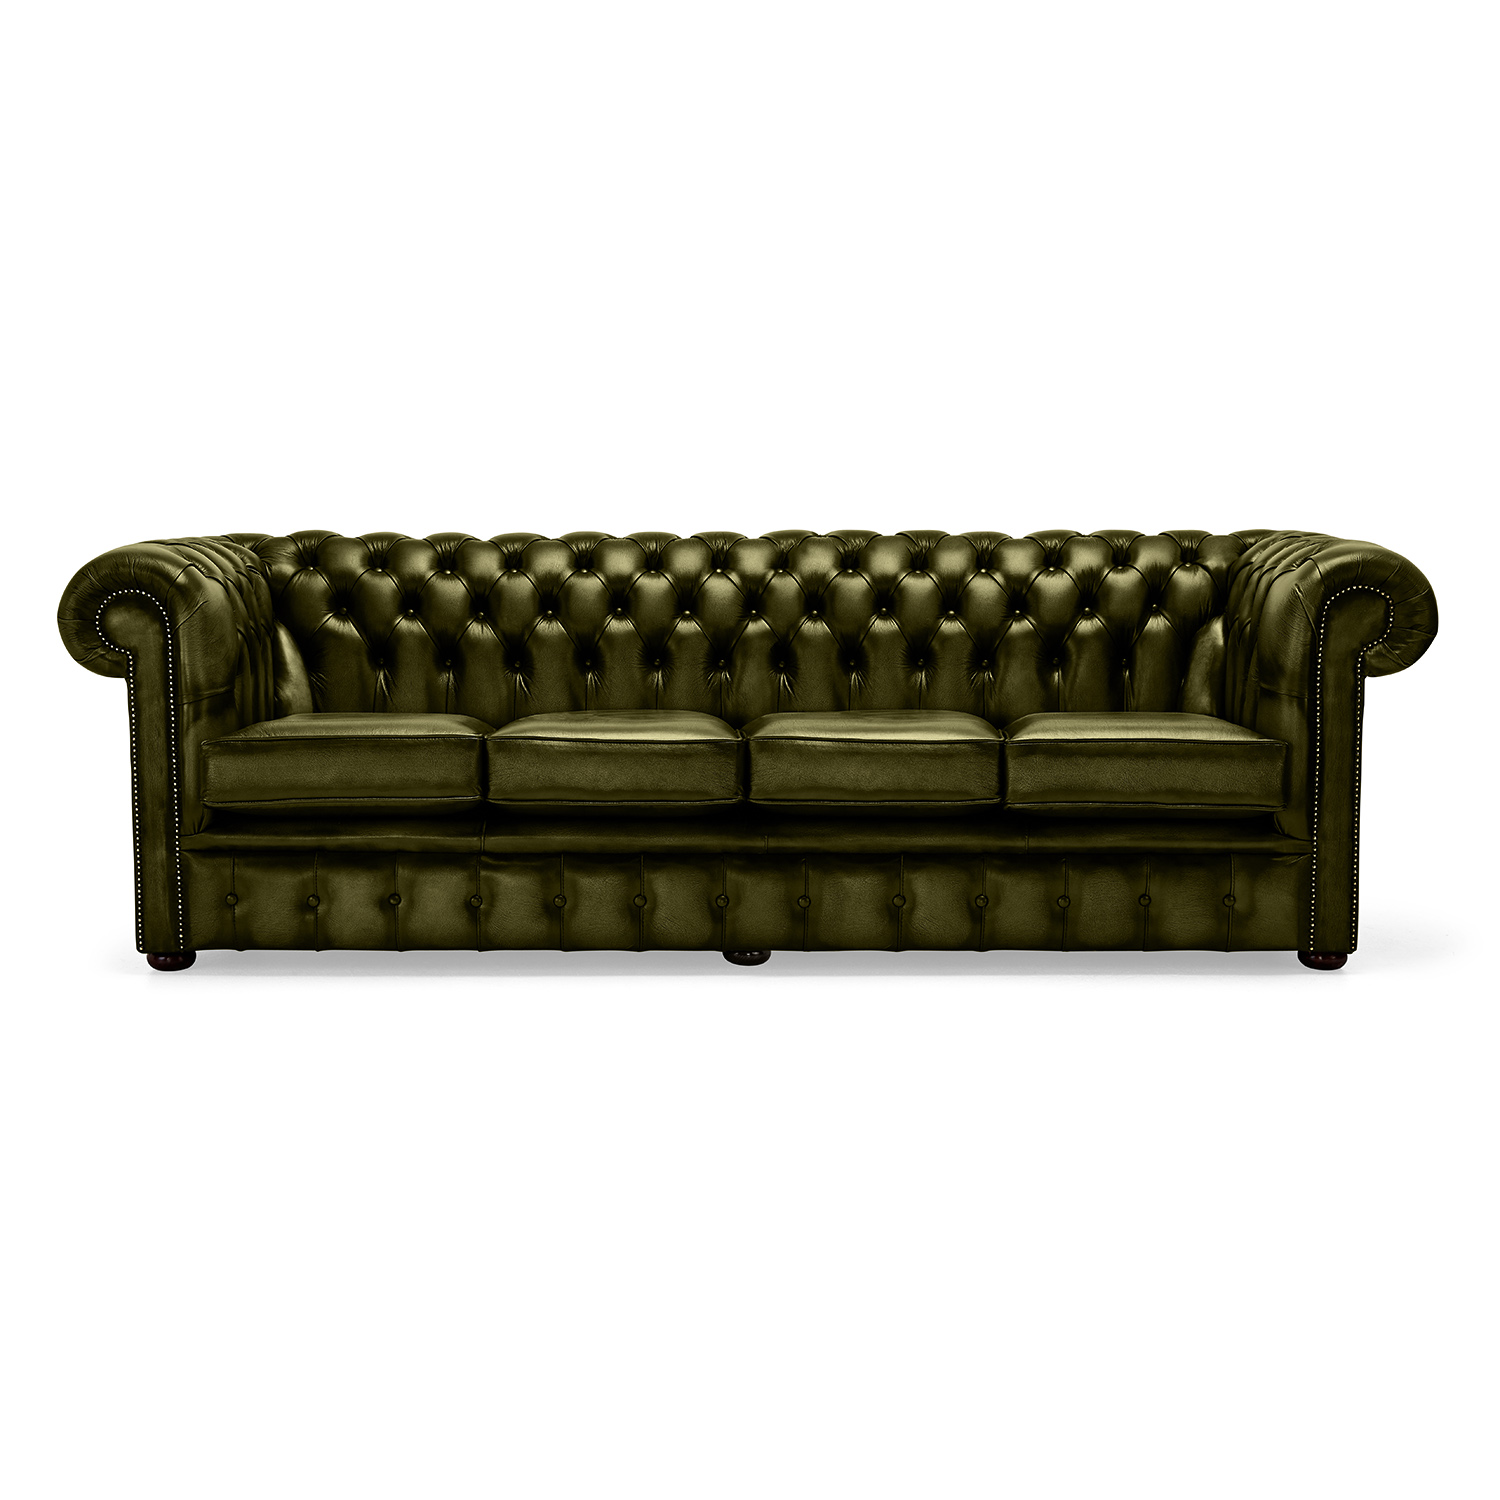 4 Seater Chesterfield Corner Sofa Belvedere Chesterfield 4 Seater Antique Leather Sofa Olive